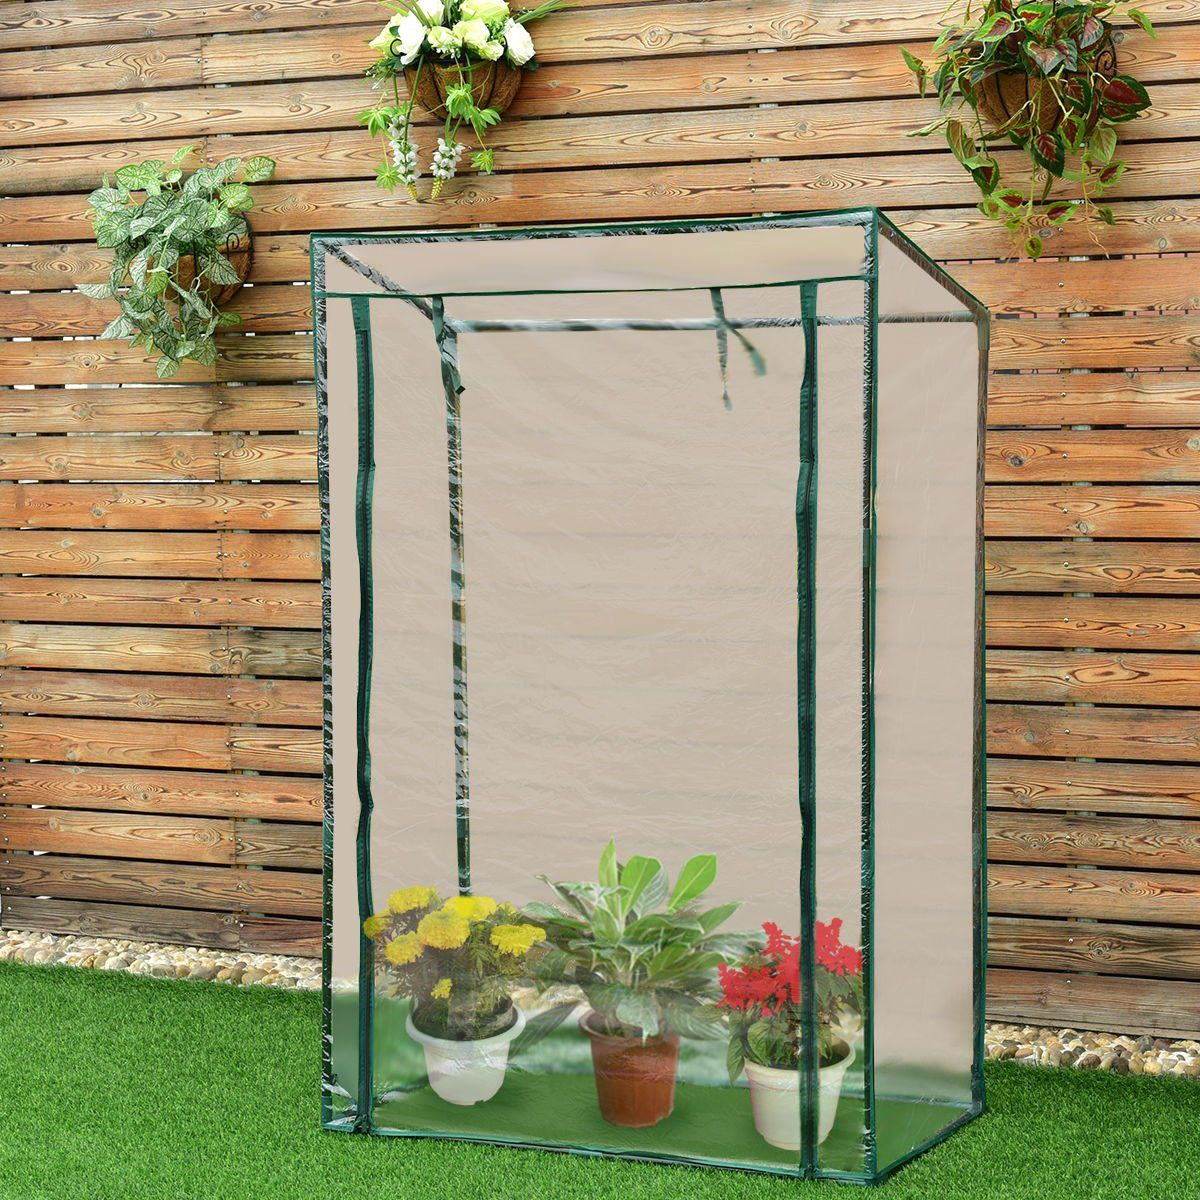 Gjh One Garden Greenhouse Grow House Plant Vegetable Portable Growbag Pvc Cover Outdoor 40x20x59 To View Further For This Item Visit The Image Link